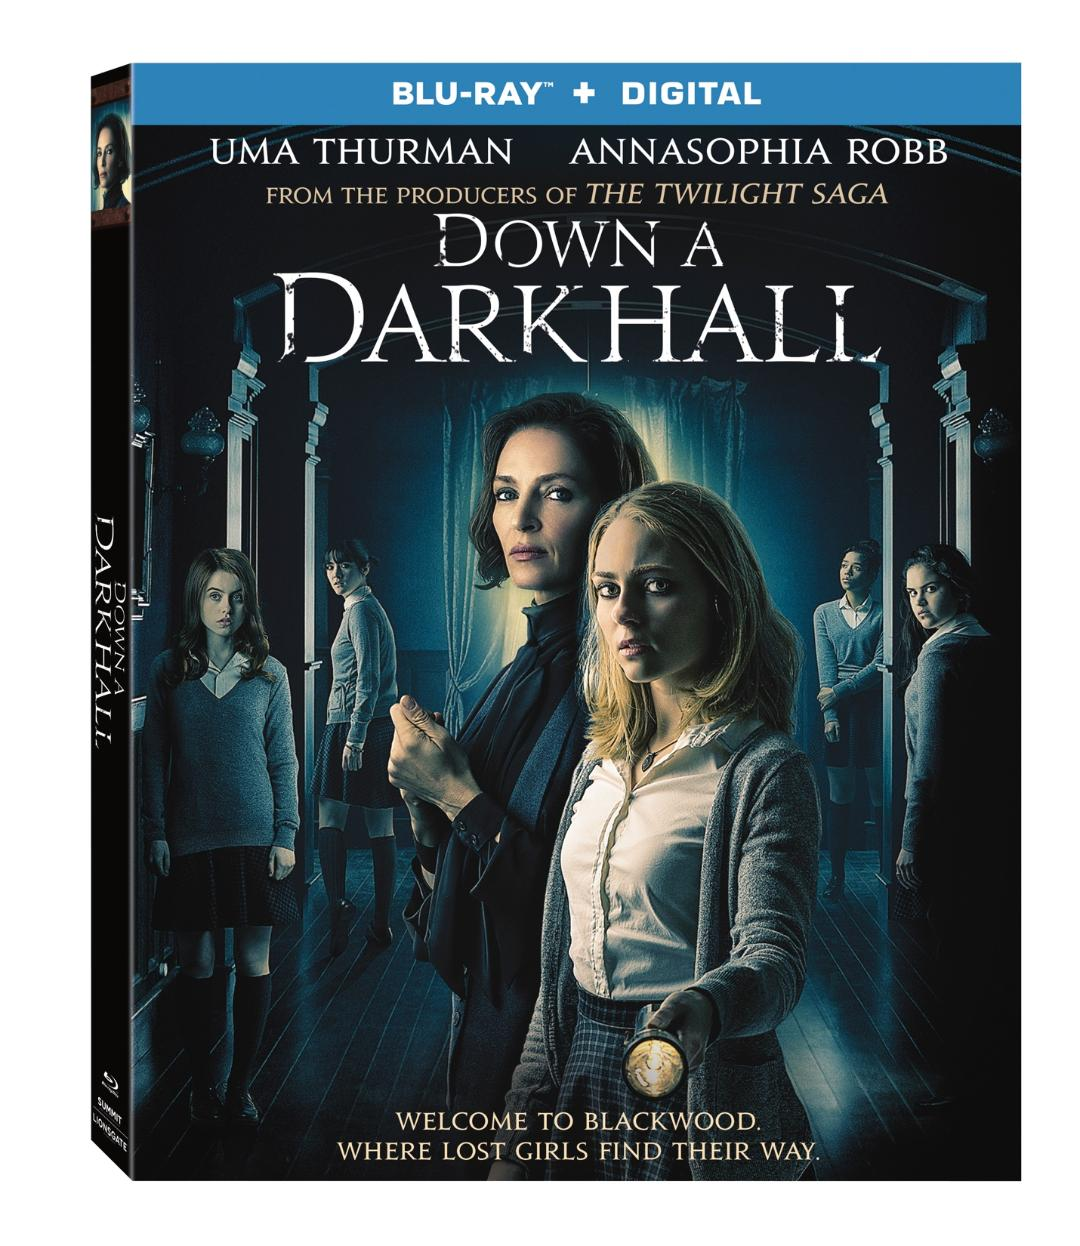 DOWN A DARK HALL Blu-ray